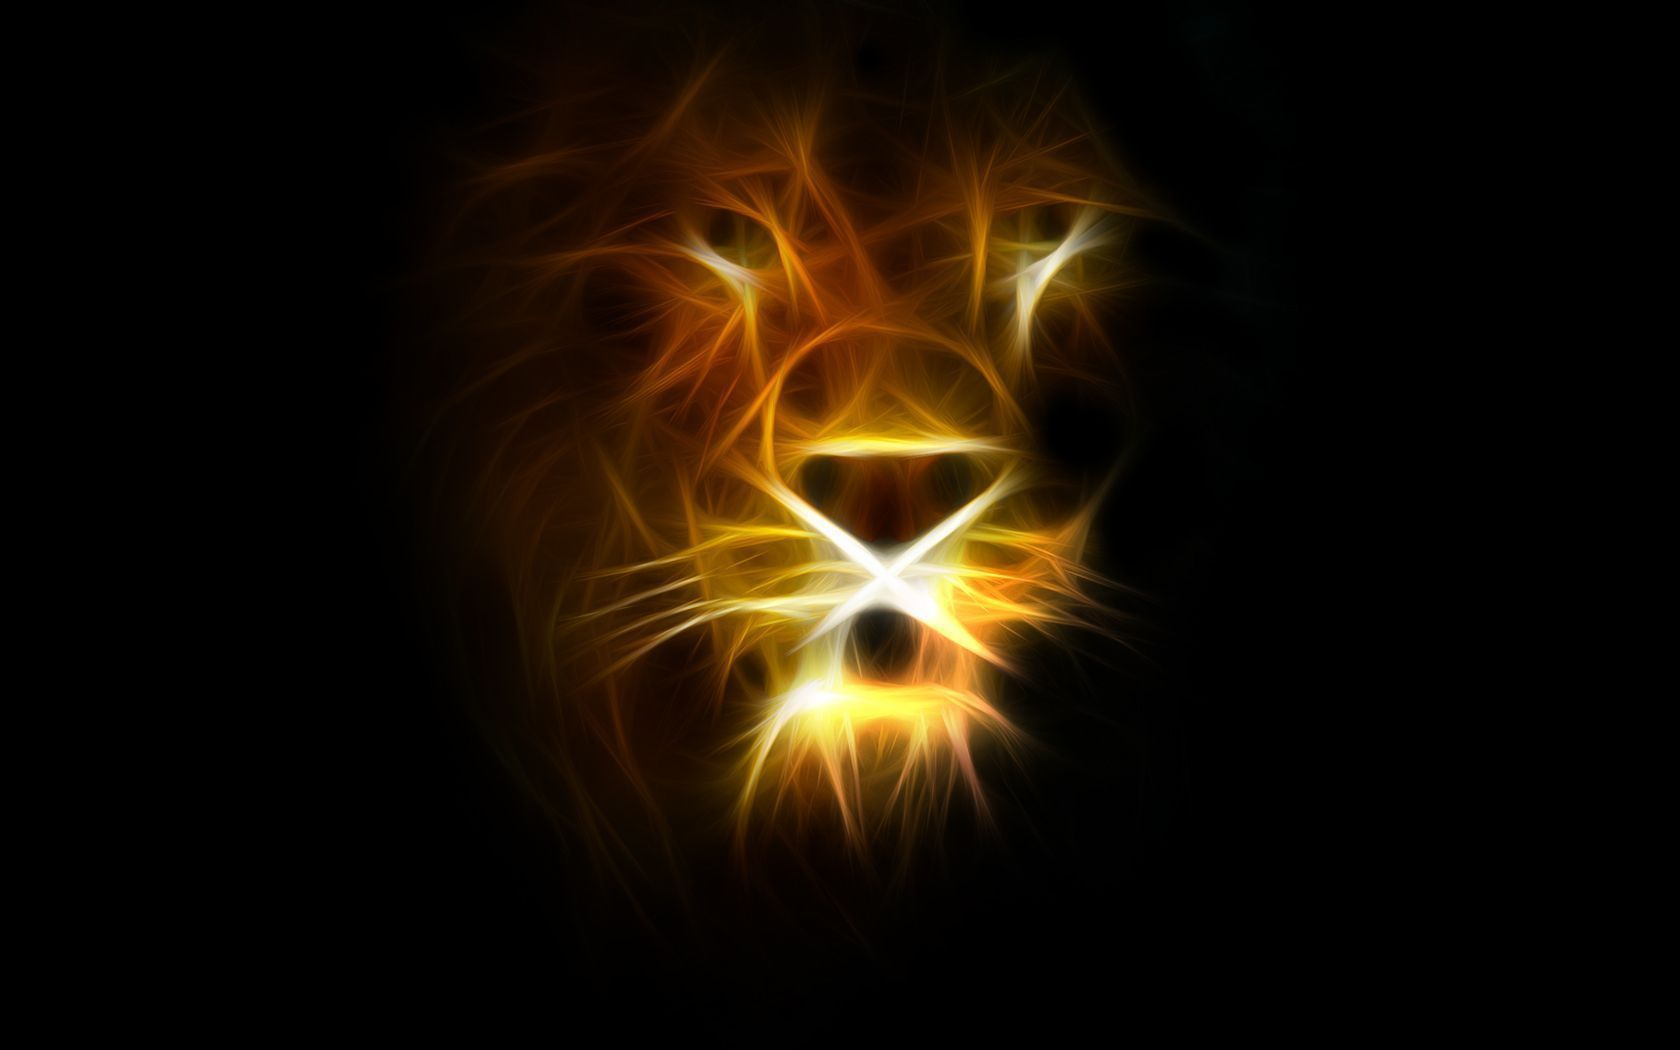 Hd wallpaper lion - Lion Hd Wallpapers Page 0